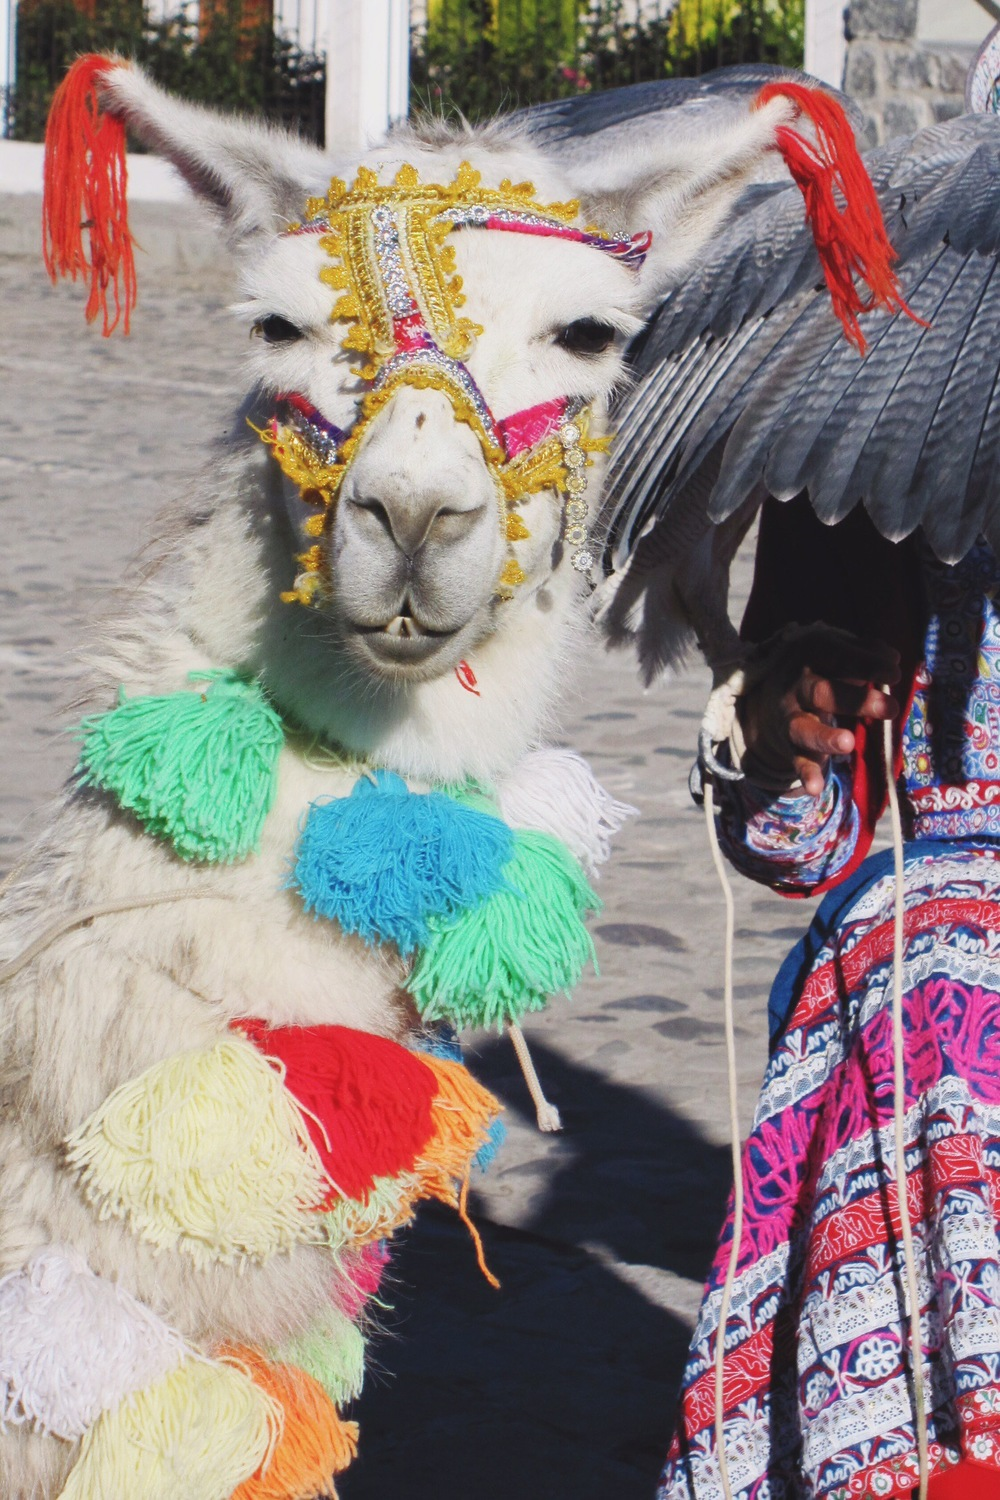 Best dressed llama in Yanque